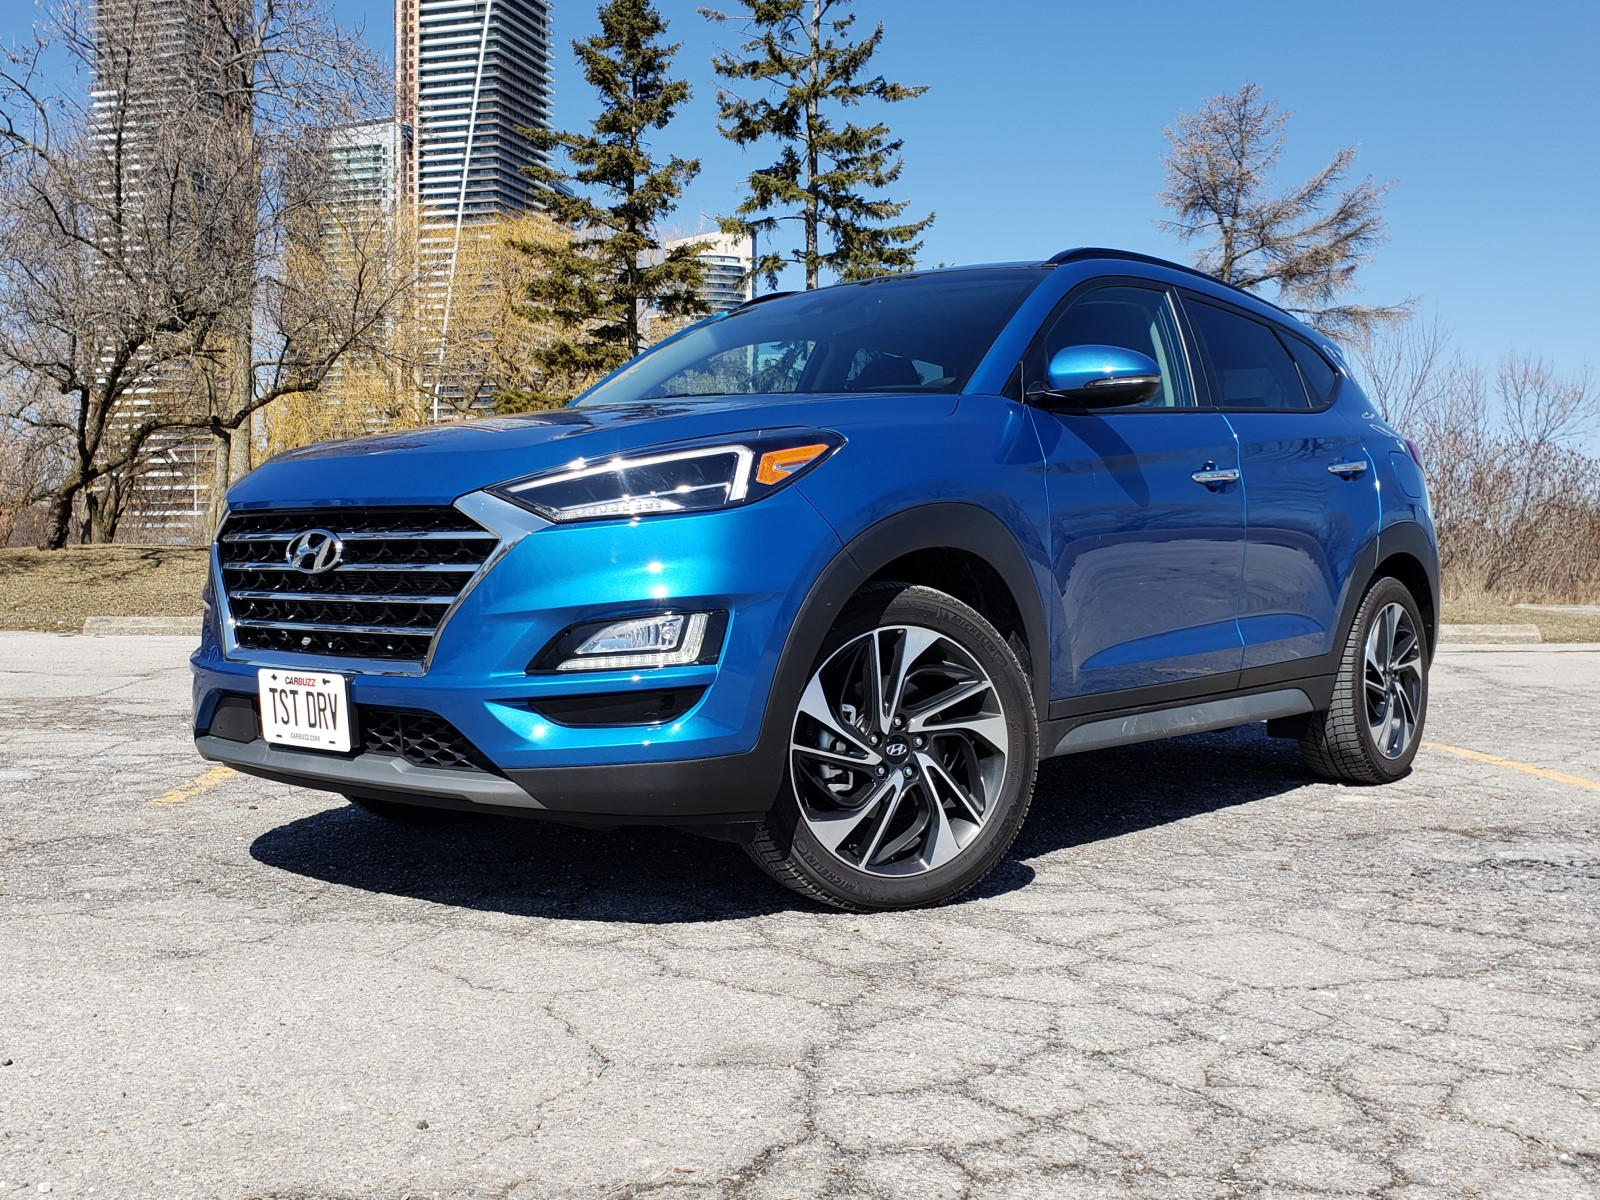 2019 Hyundai Tucson: Refreshed, Styling, Price >> 2019 Hyundai Tucson Test Drive Review A Value Stand Out